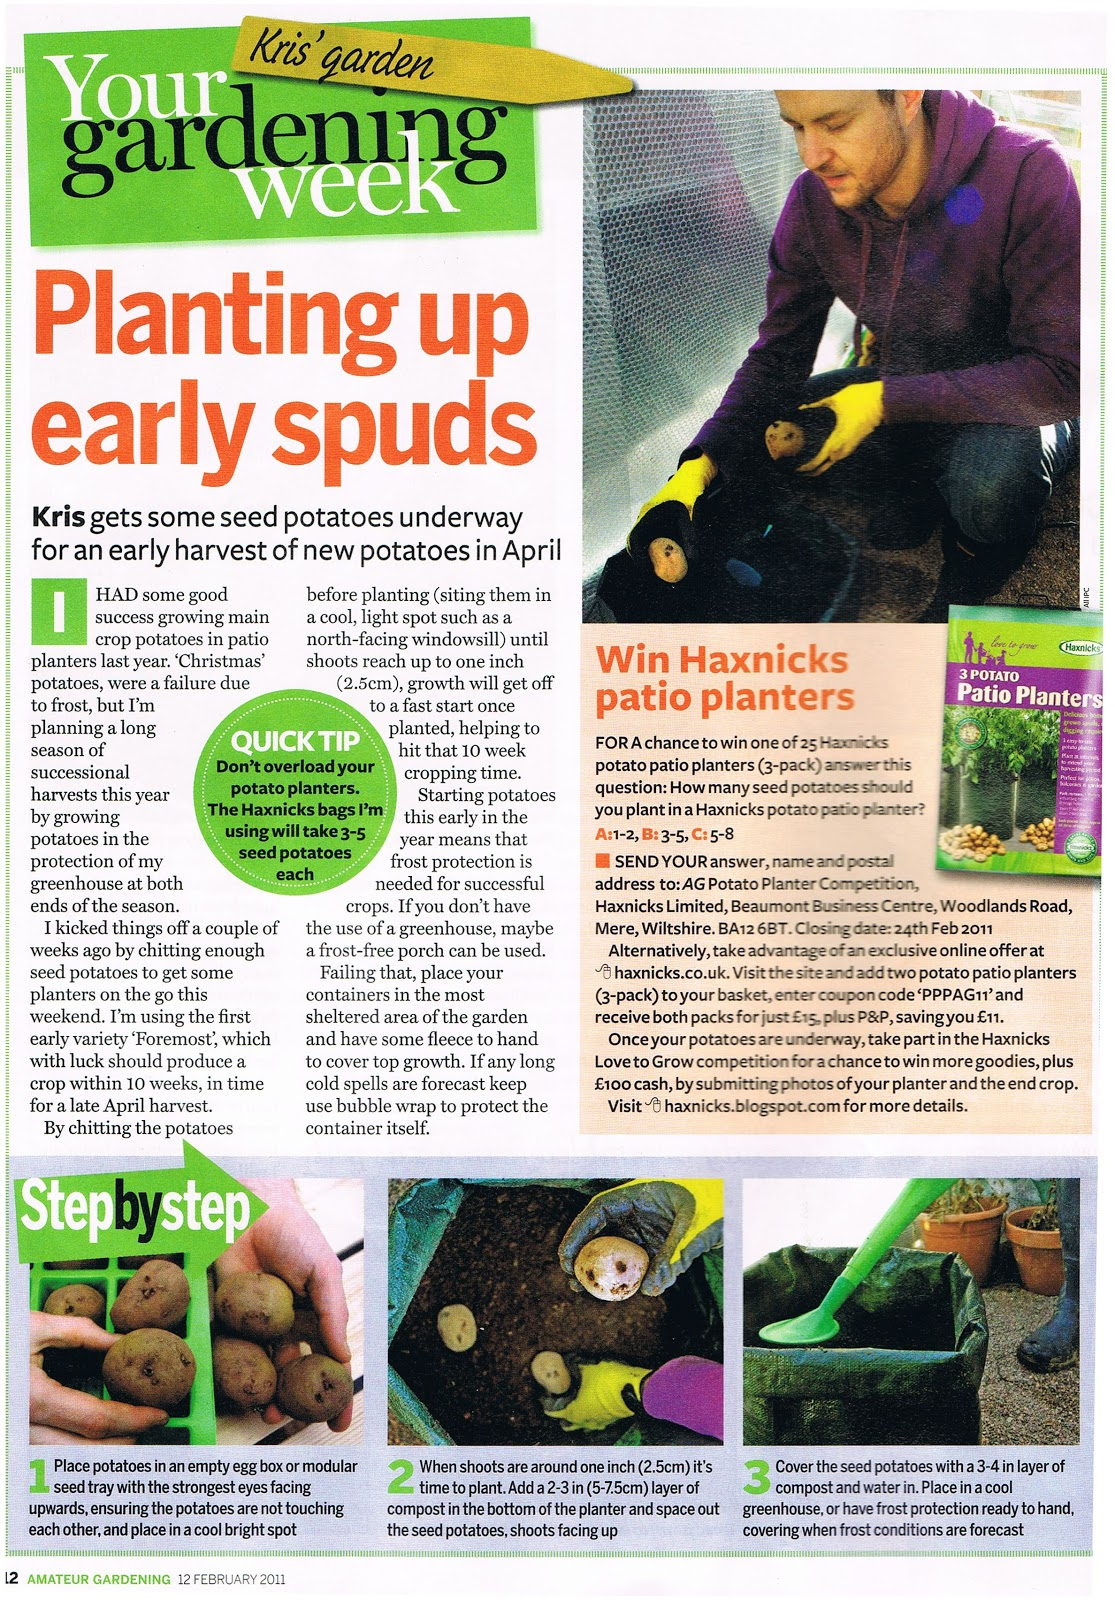 In Amateur Gardening this week, gardening editor Kris Collins wrote about ...